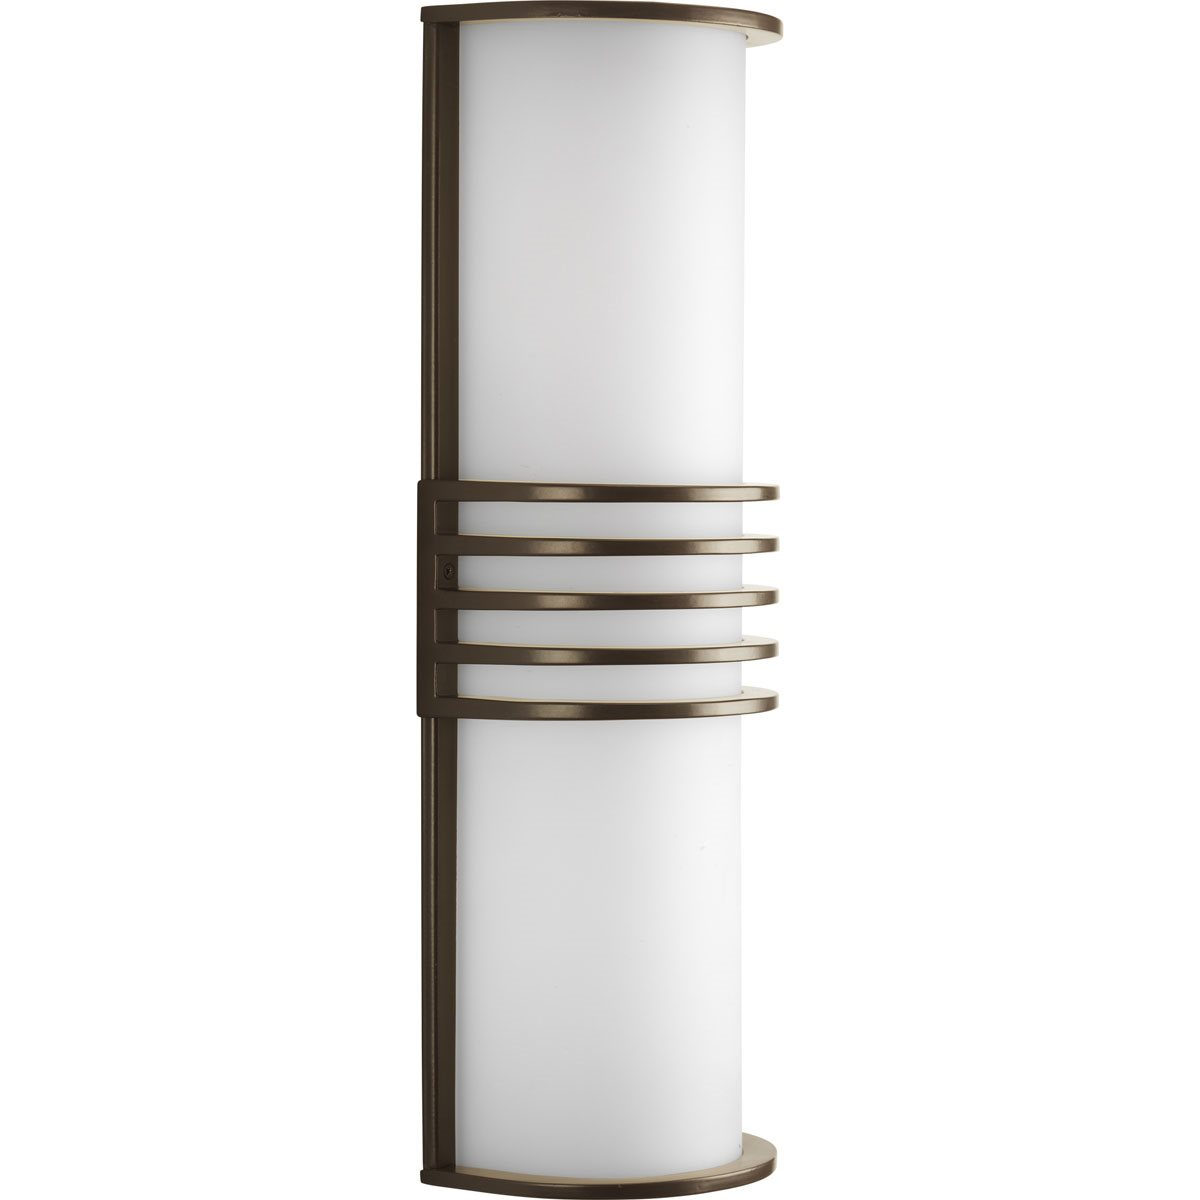 Efficient Lighting Interior Wall Sconce Lighting Fixture With Built In Switch : Progress Lighting P5915-20 Parker Transitional Outdoor Wall Sconce PG-P5915-20